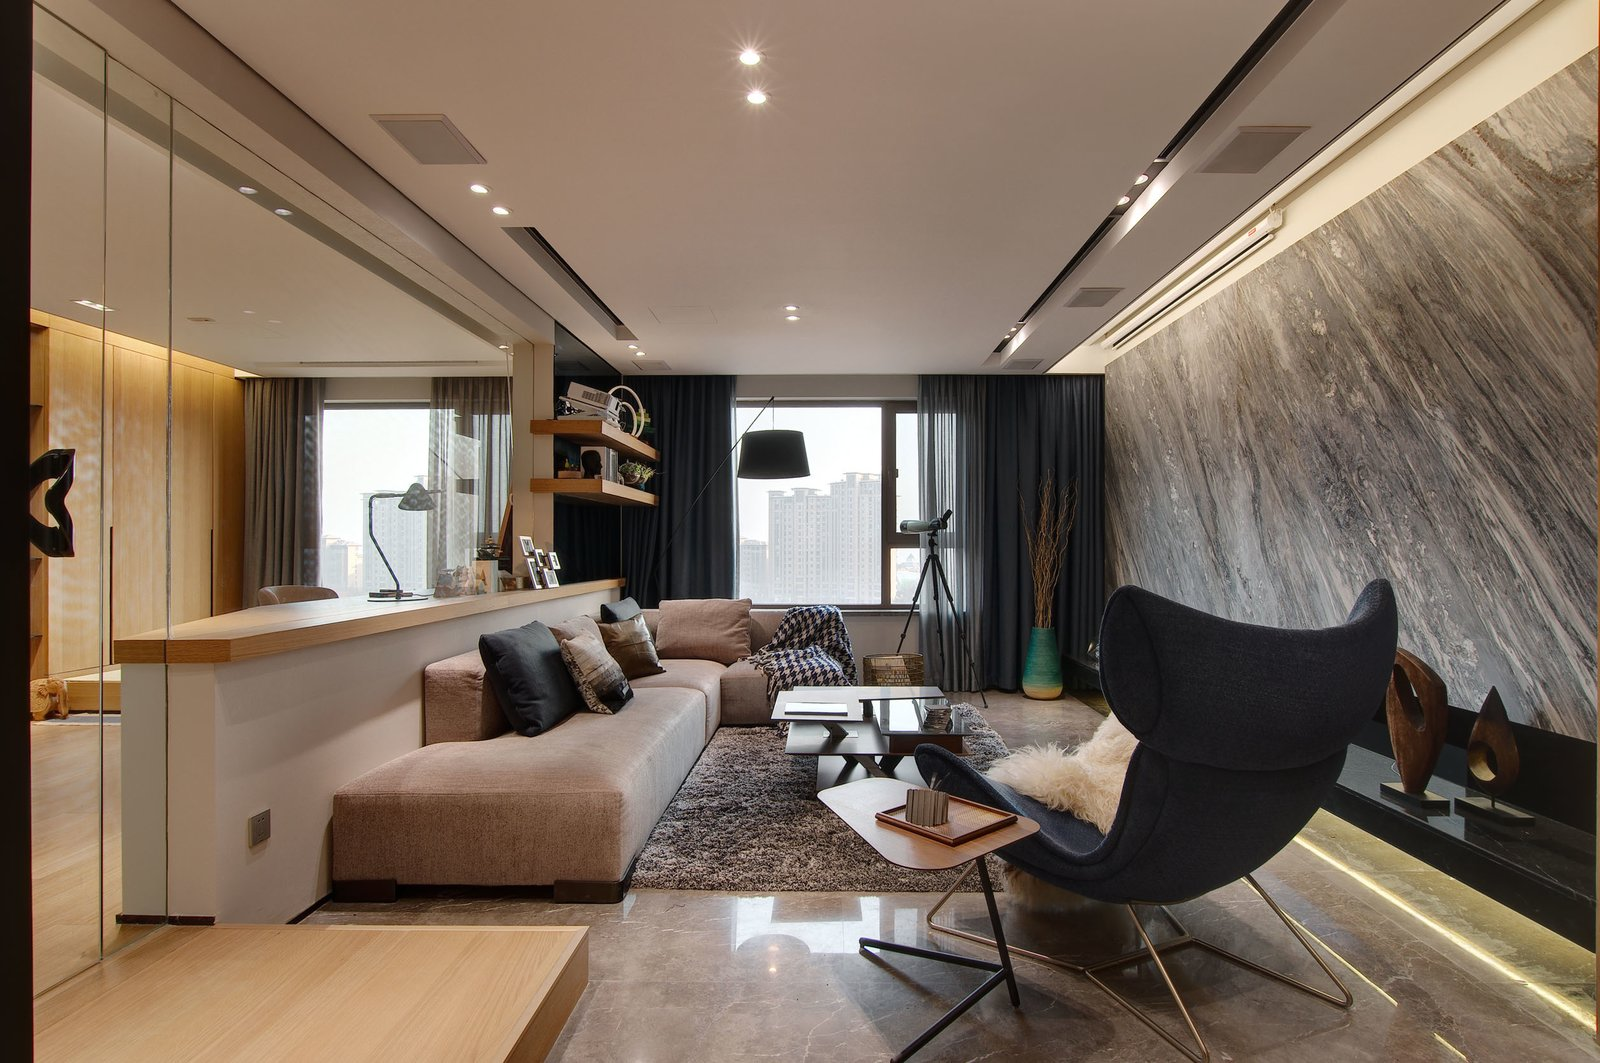 The design team has fused the natural vista captured by the line of sight with a   140㎡ residence, and used natural materials such as wood, stone, and fabric to create a relaxing atmosphere.  During the strolling